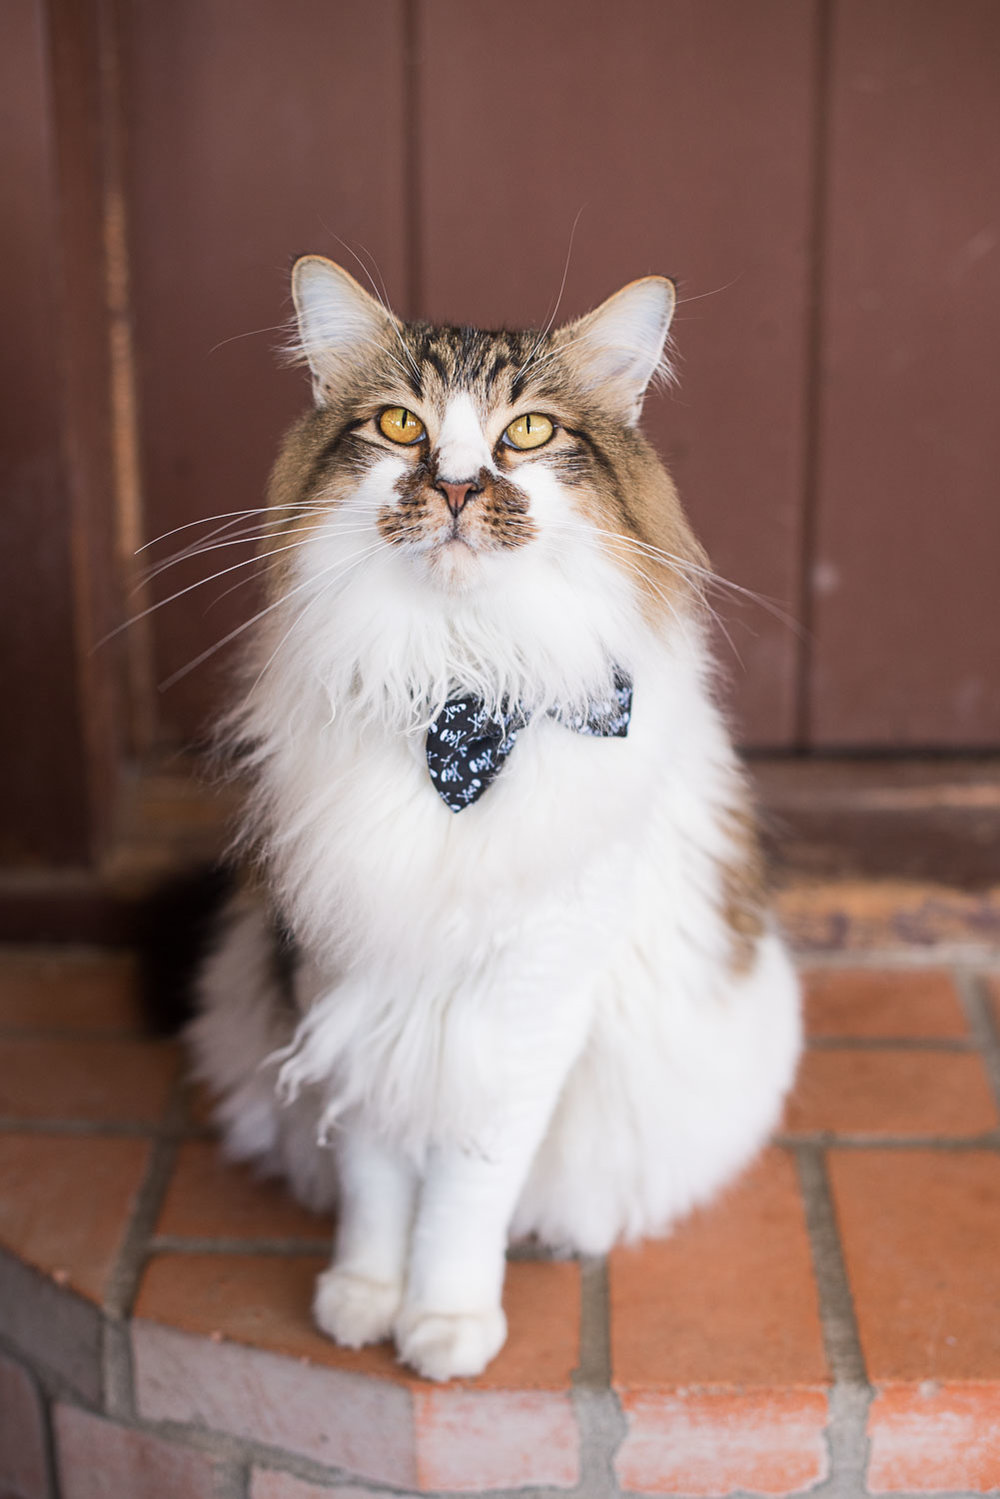 7 wedding cat crookshanks.jpg